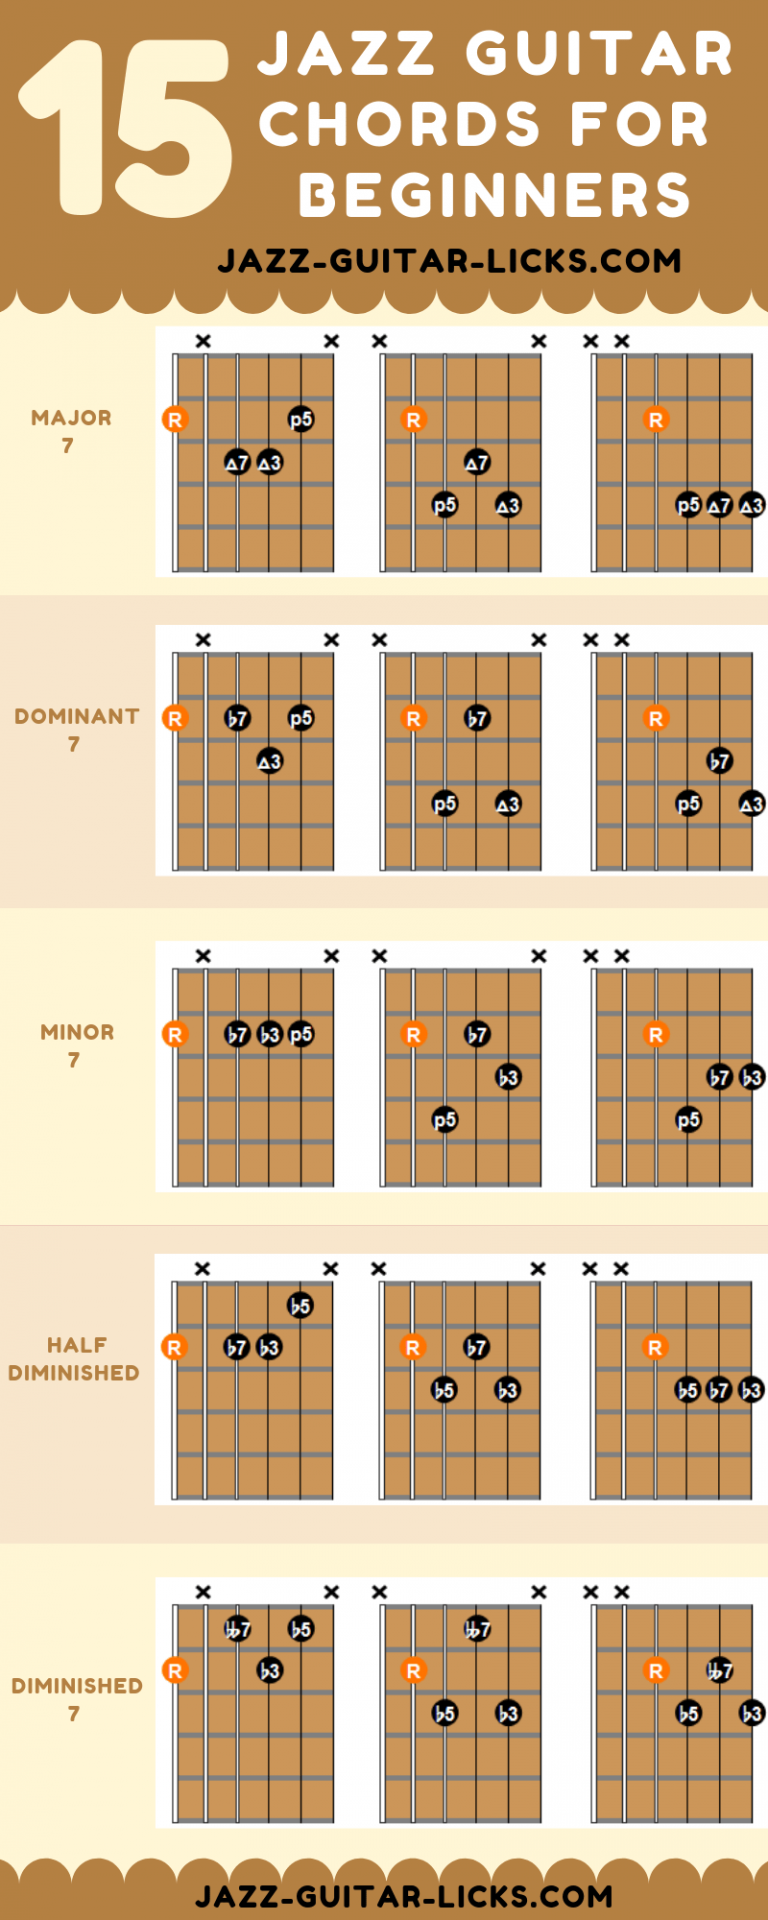 15 easy jazz guitar chords for beginners